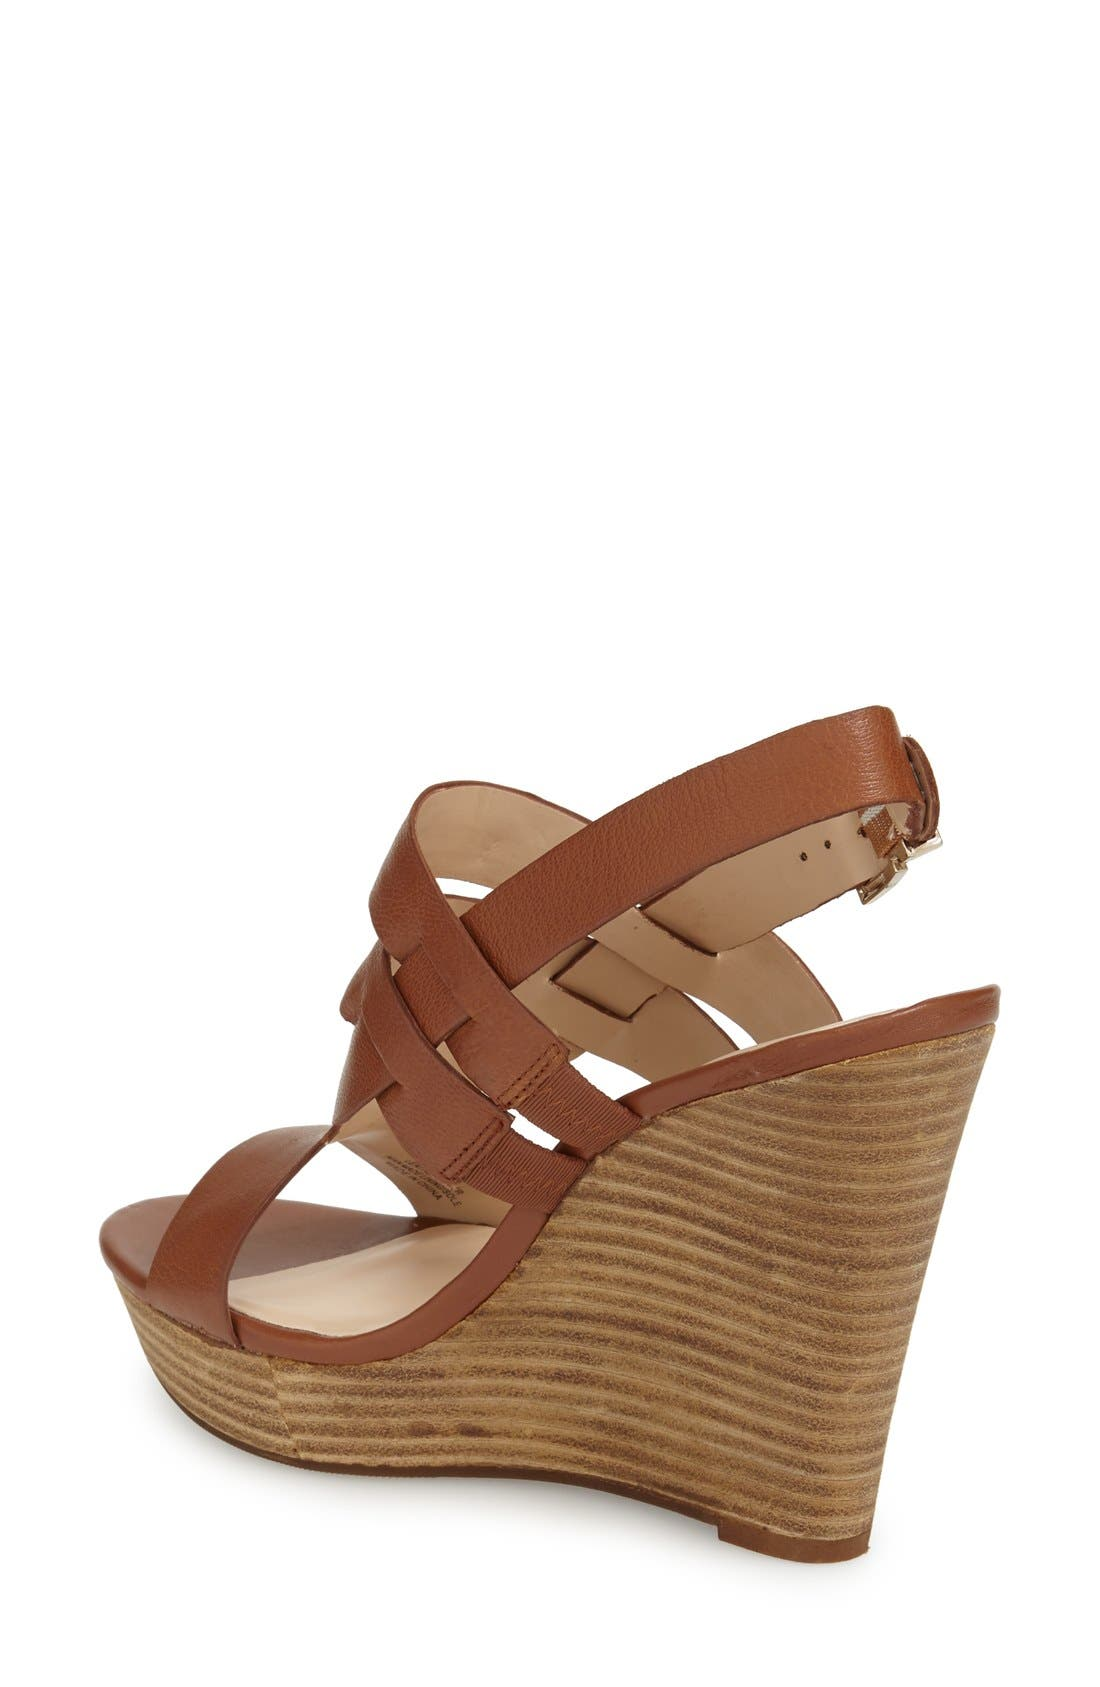 'Jenny' Slingback Wedge Sandal,                             Alternate thumbnail 2, color,                             Equestrian Tan